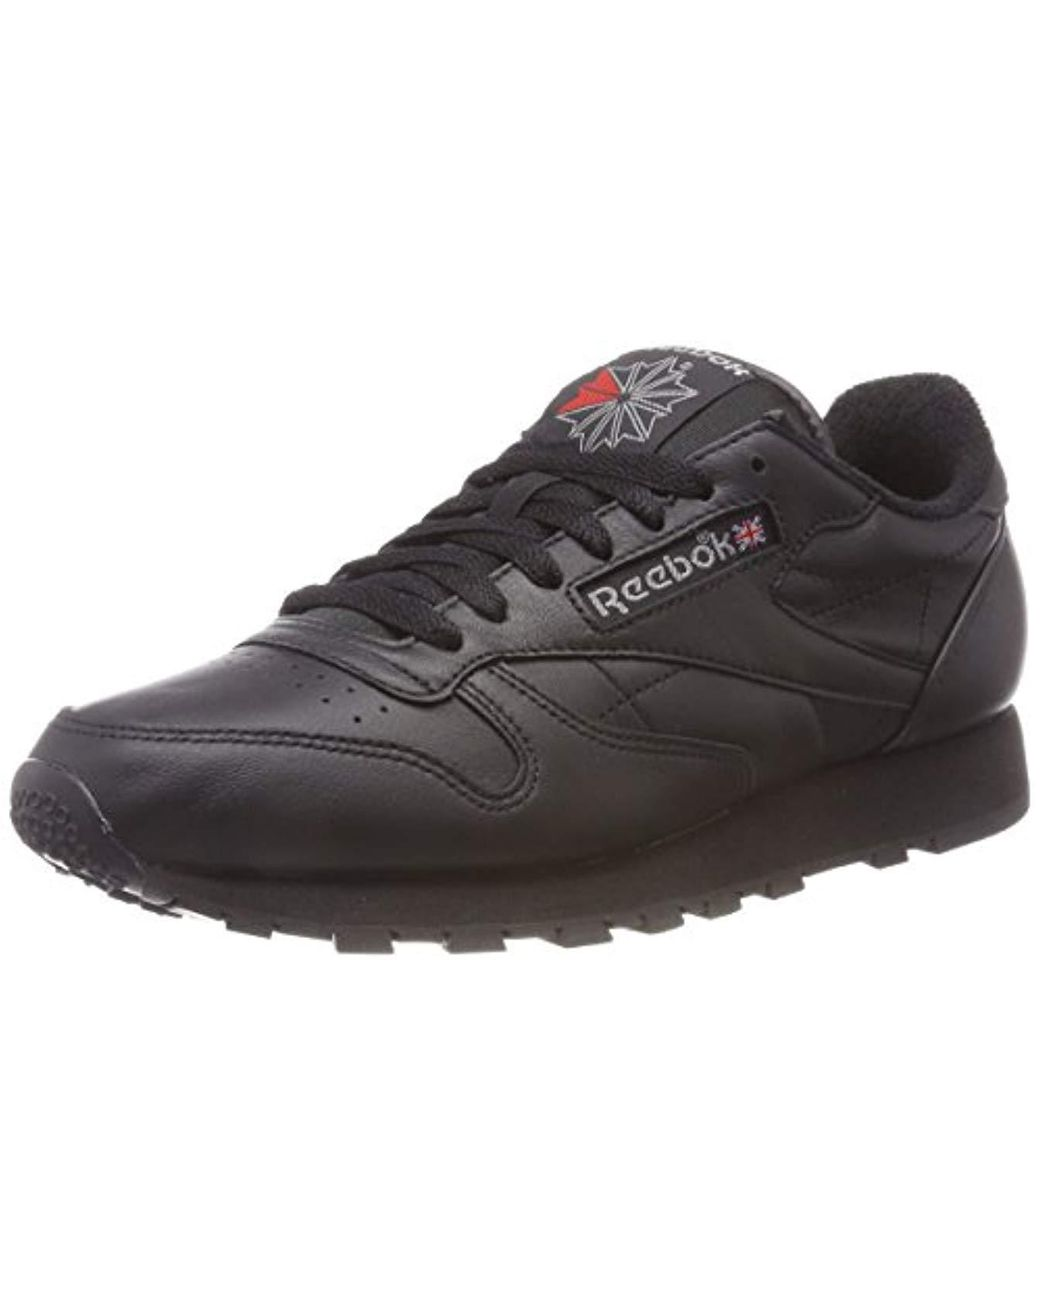 185e80b9f7f6b Reebok Classic Leather Archive Trainers in Black for Men - Save 58 ...